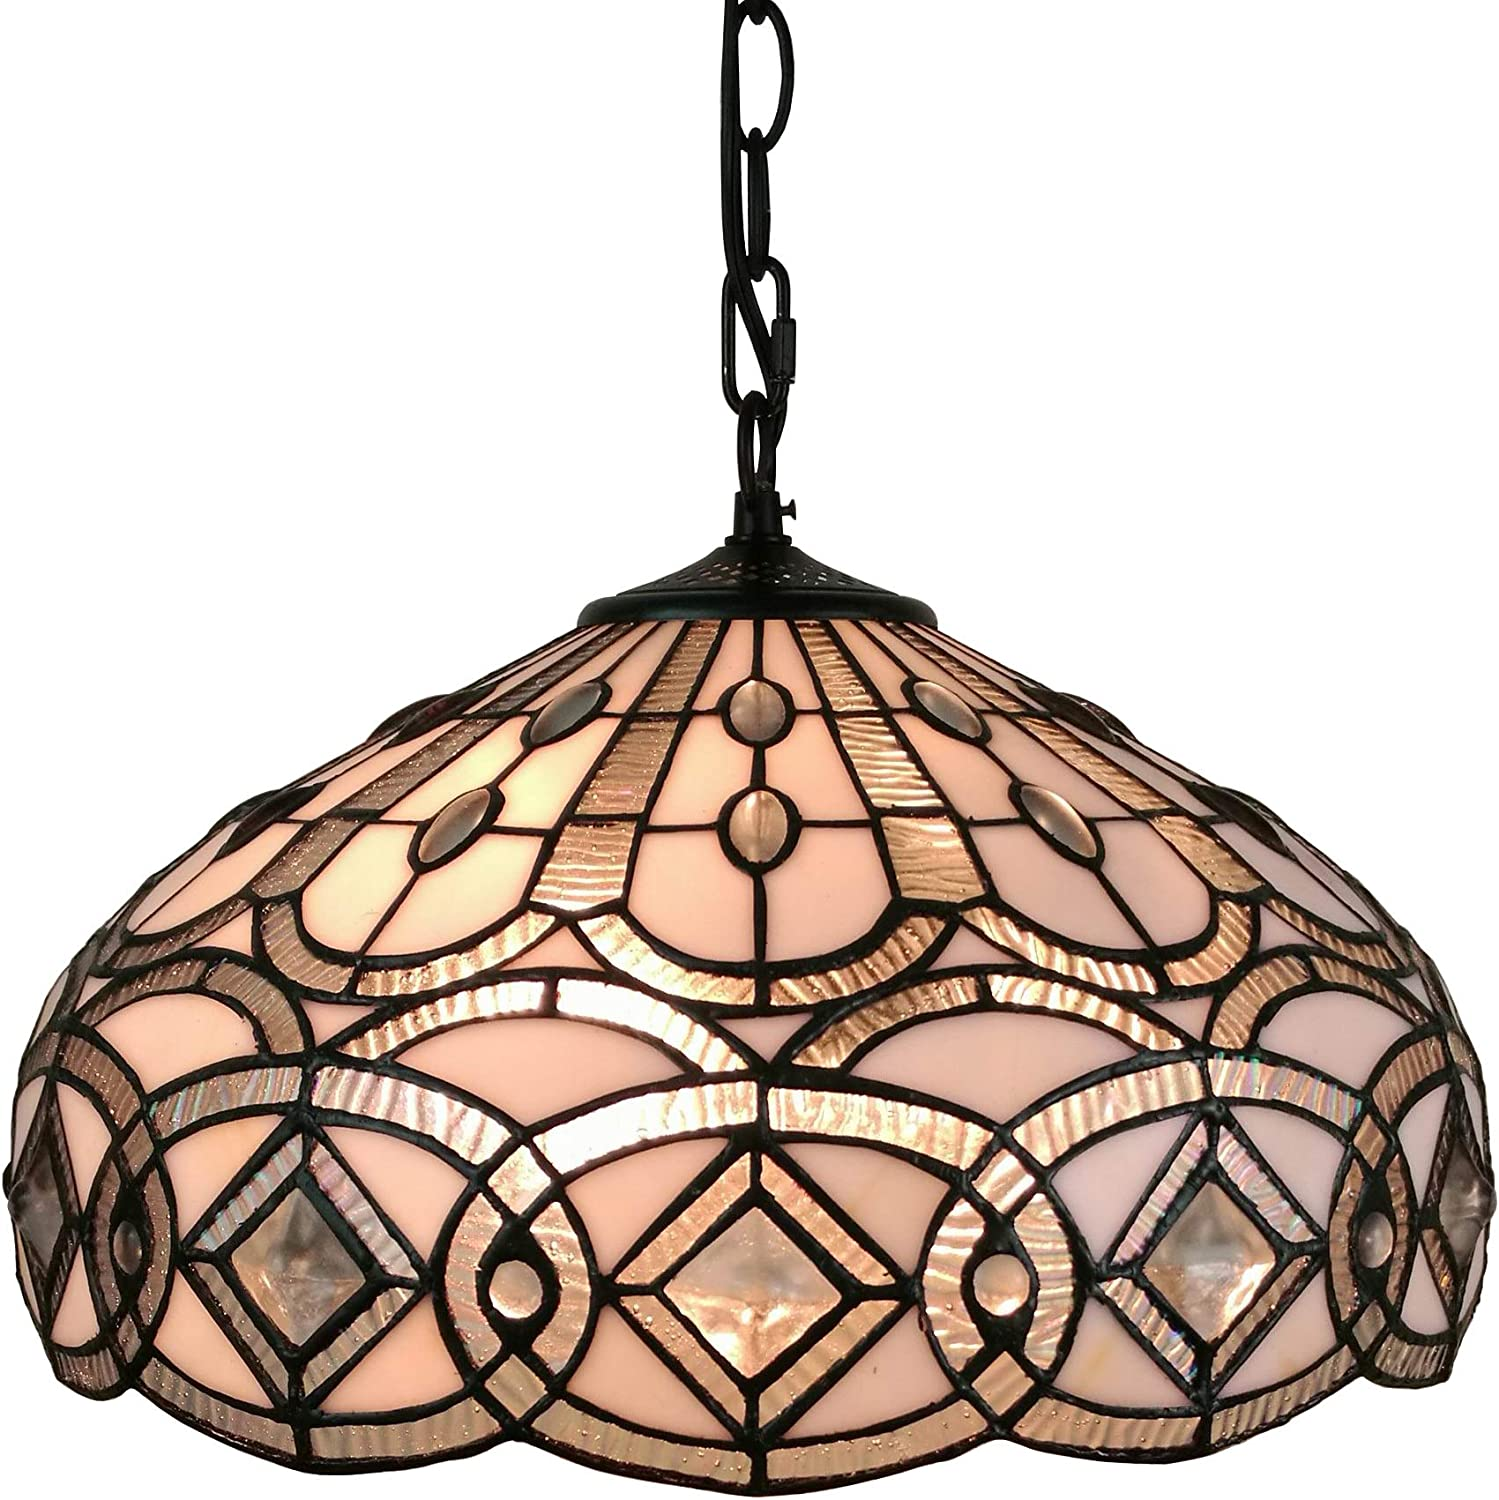 Amora Lighting Tiffany Style Hanging Pendant Lamp 16 Wide Stained Glass White Jeweleds Beads Mahogany Antique Vintage Light Decor Restaurant Game Living Dining Room Kitchen Gift AM295HL16